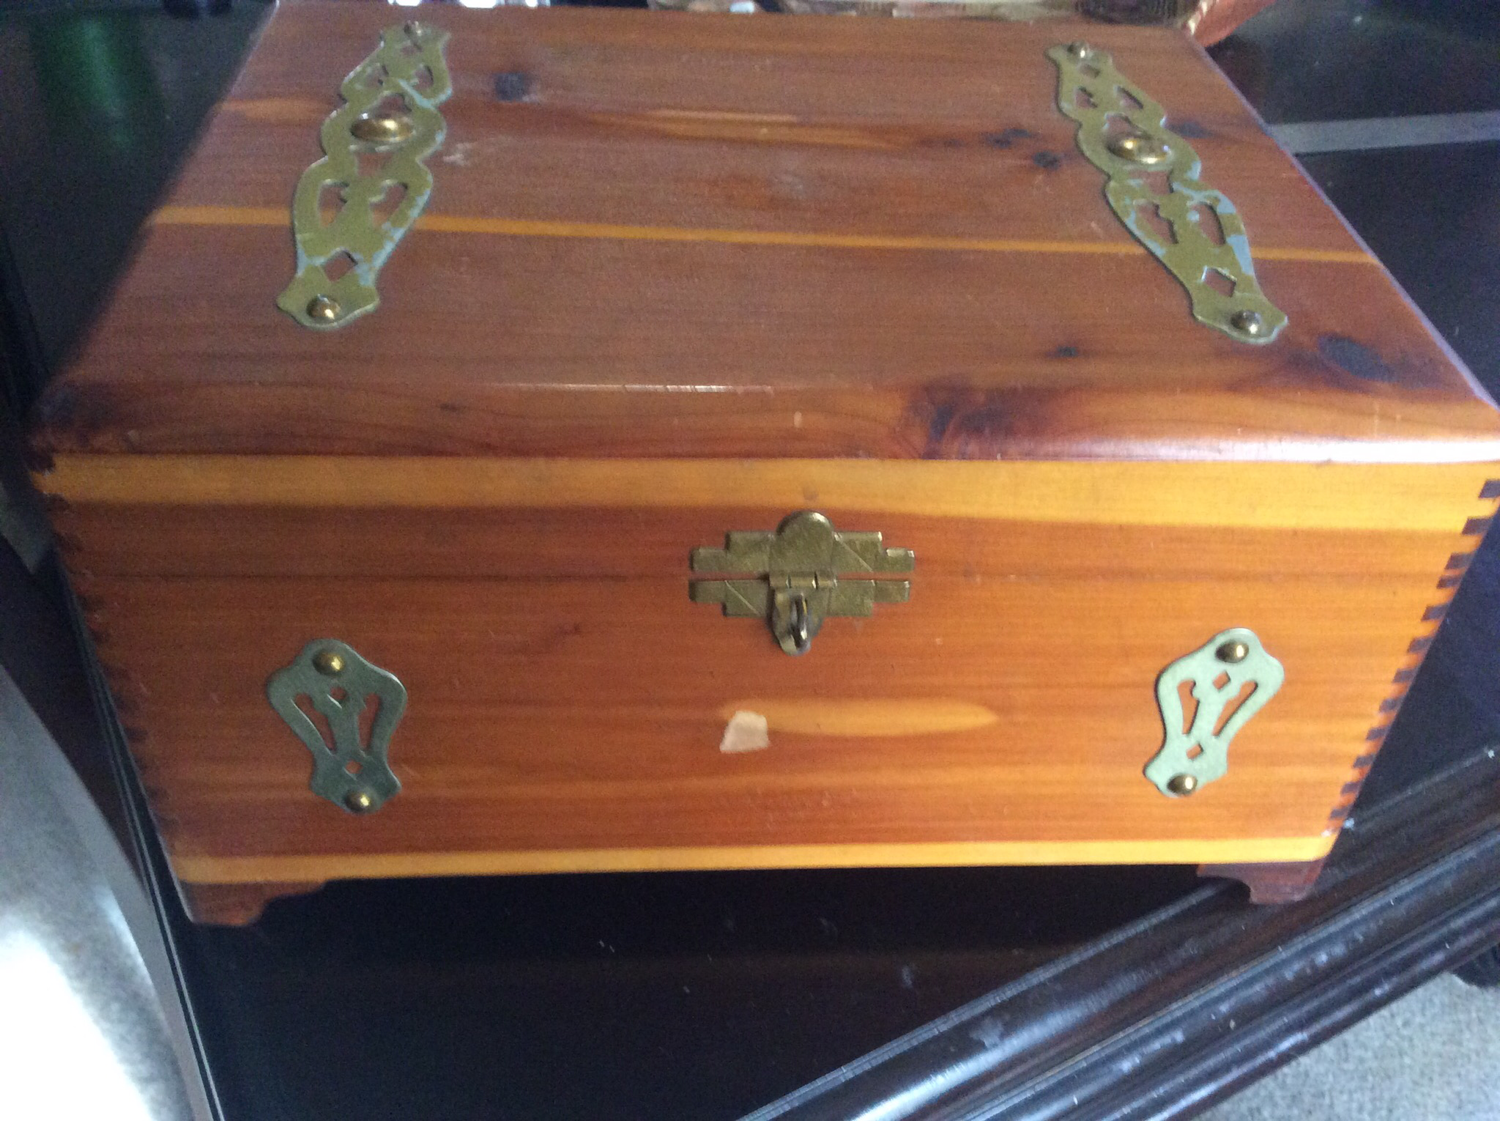 Cedar Djinn box keep tabernacles of Djinns in while they are fulfilling thy wishes to be granted